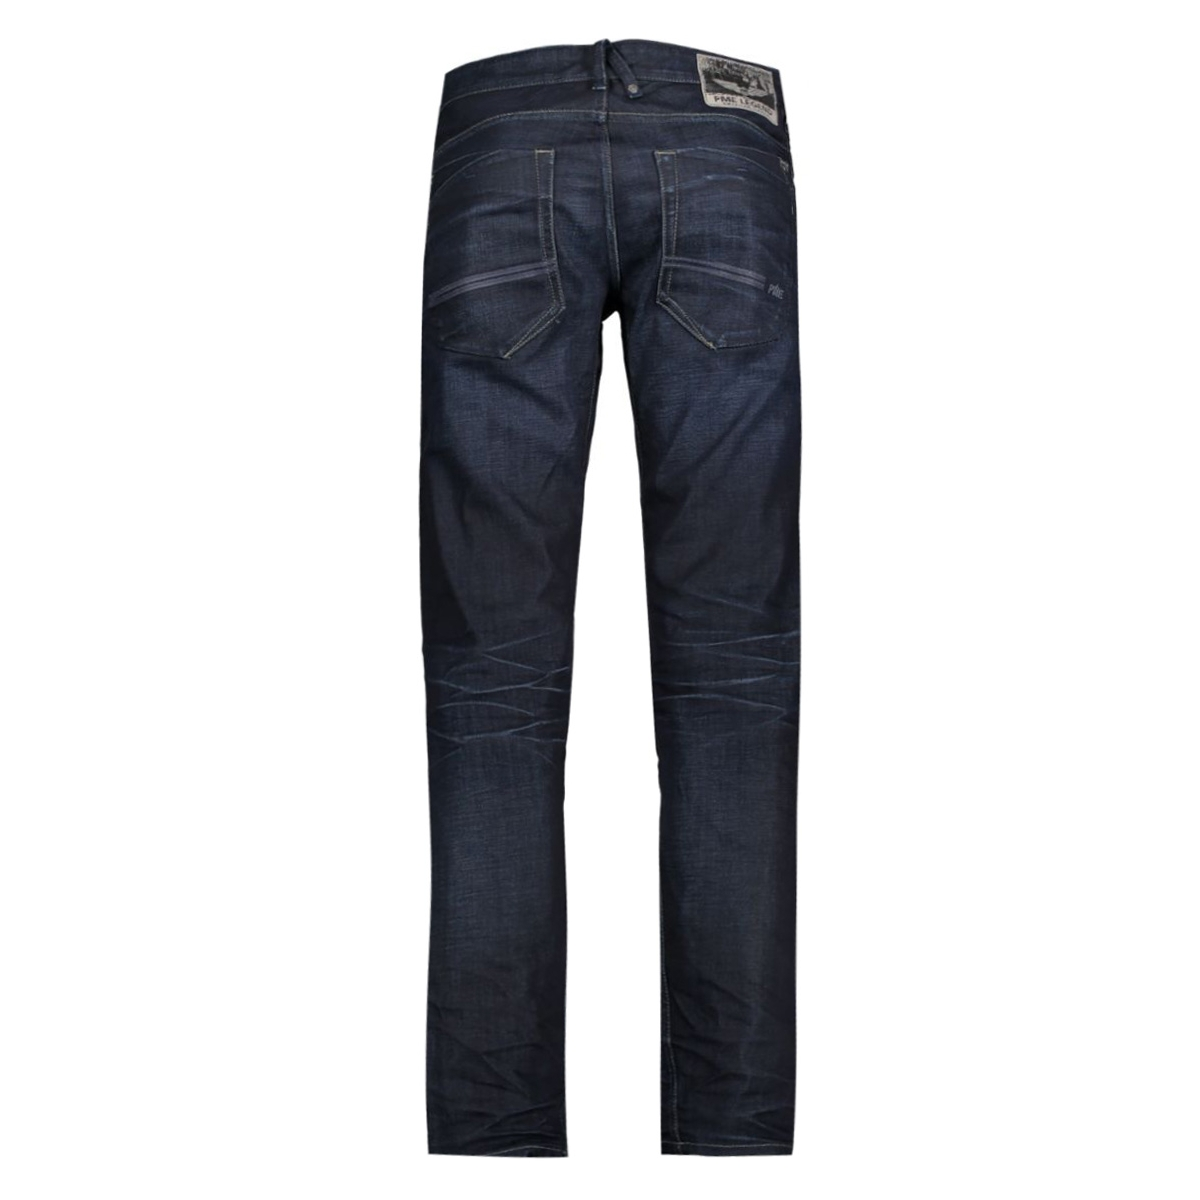 bare metal ptr975 pme legend jeans dcu